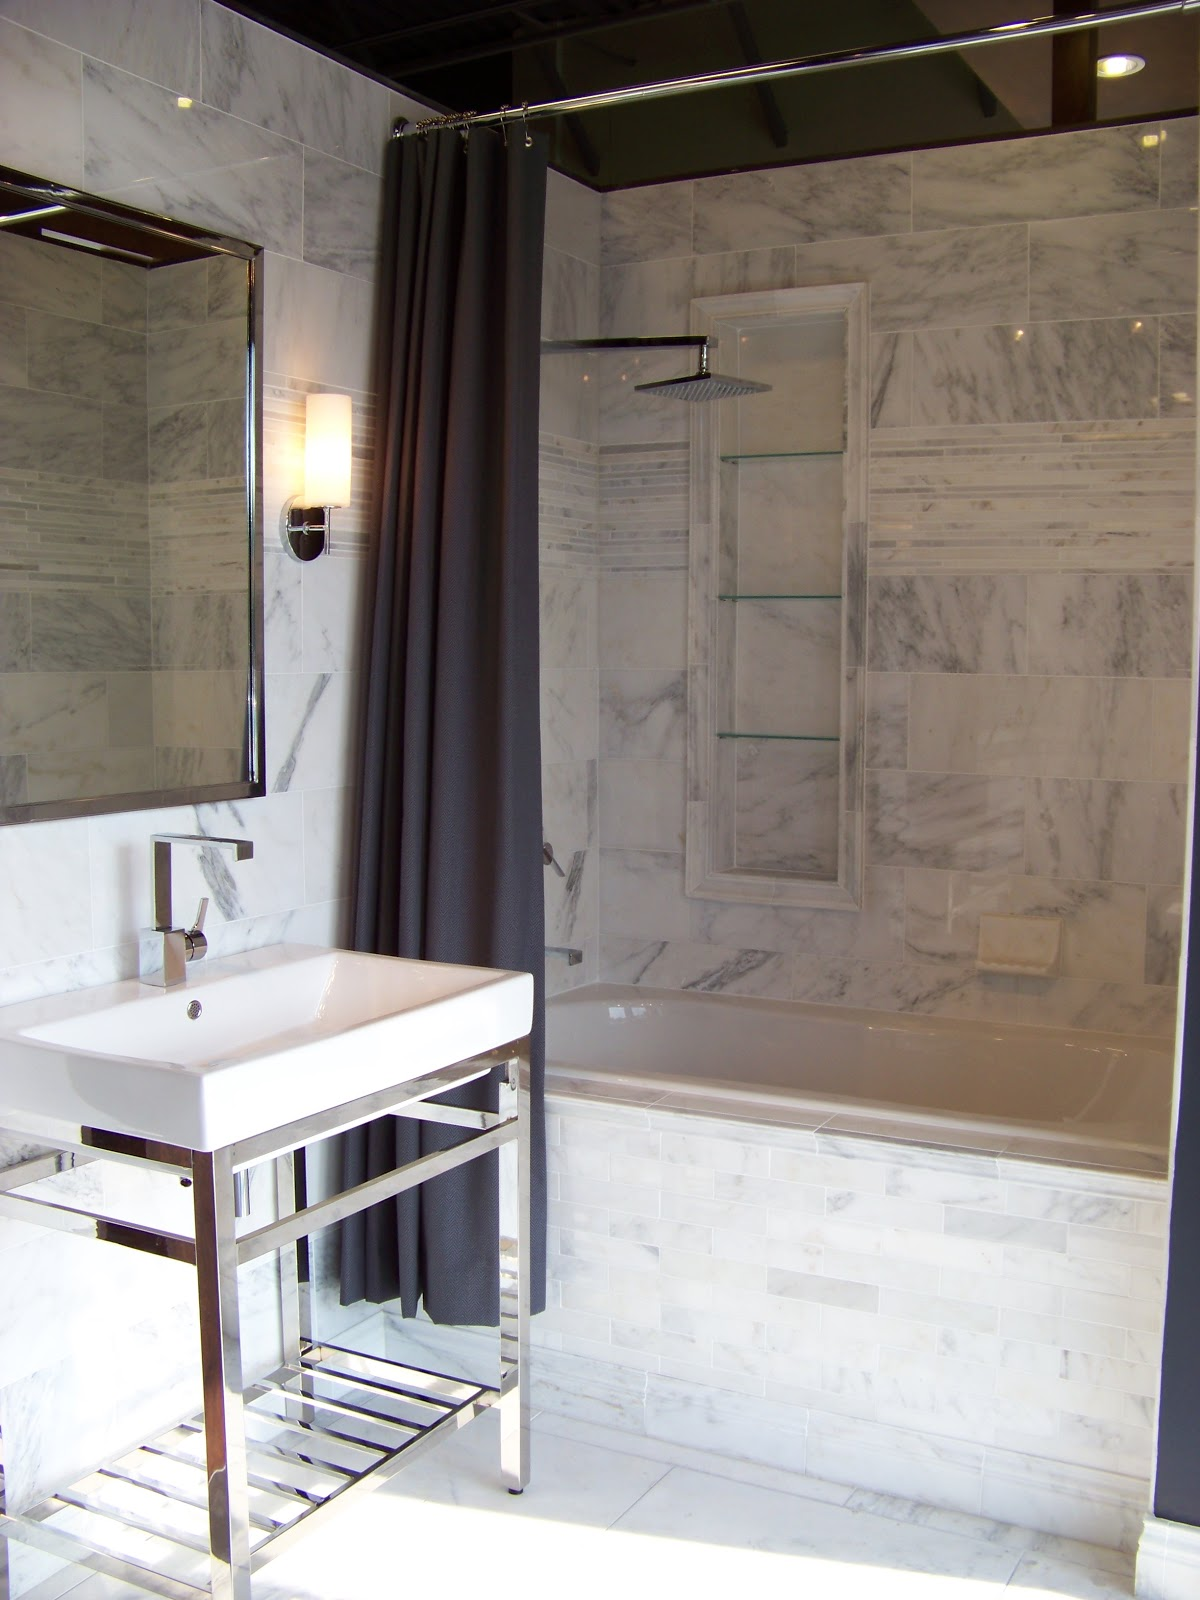 Used to made this bathroom classically fabulous with a little edge